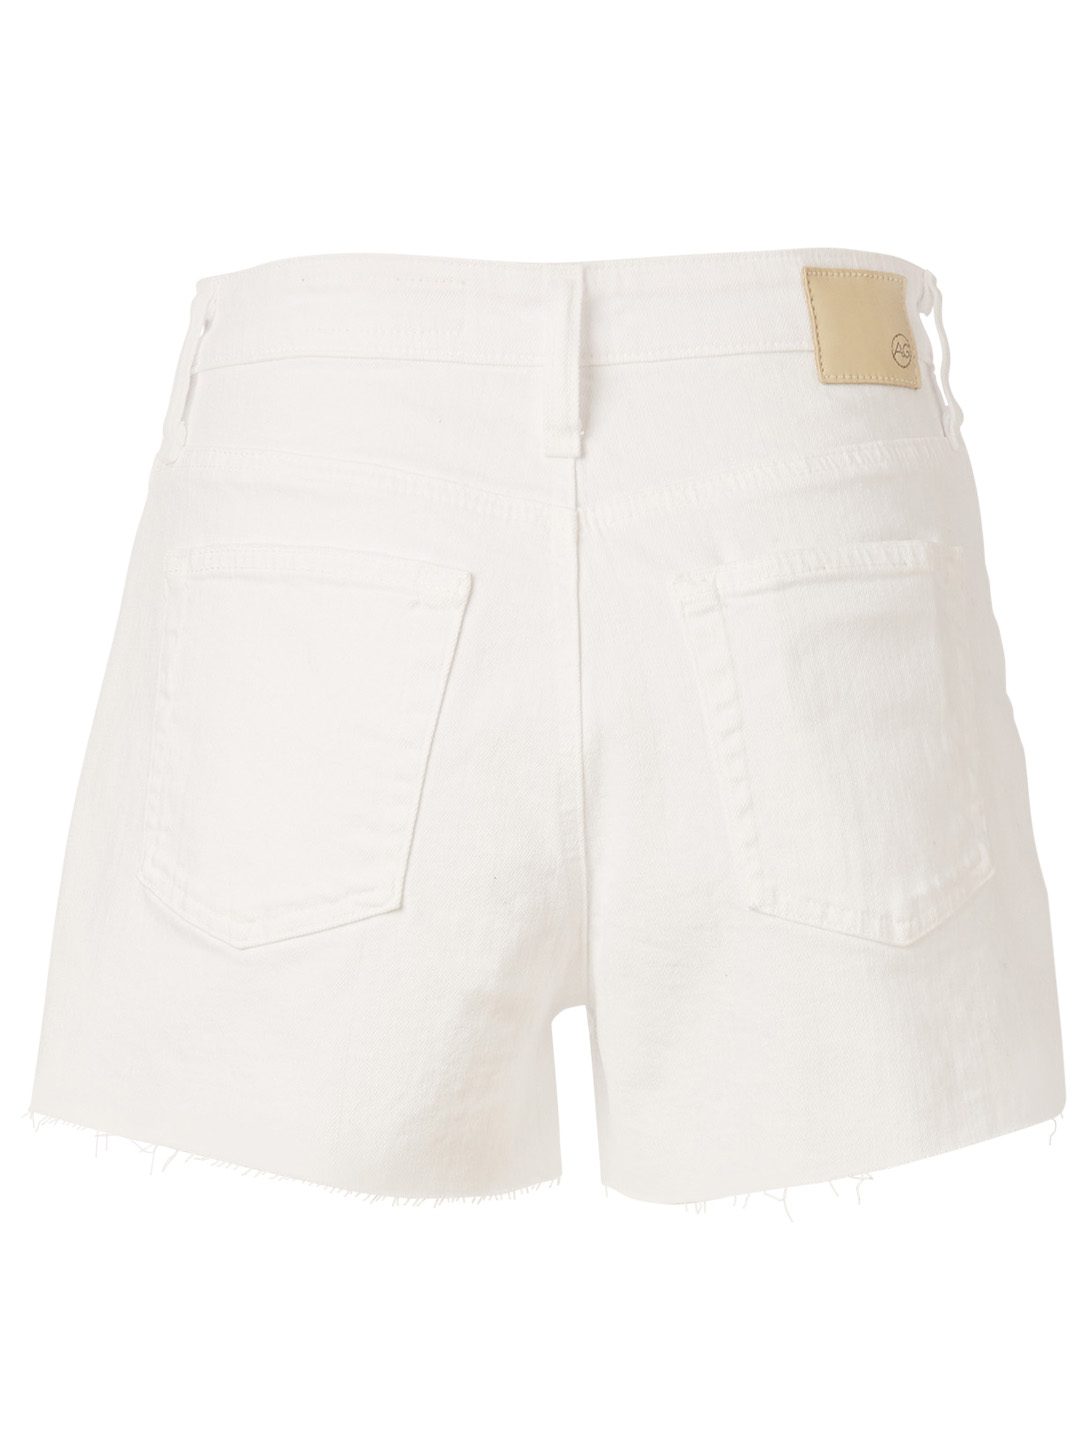 AG Mikkel High-Waisted Shorts Women's White